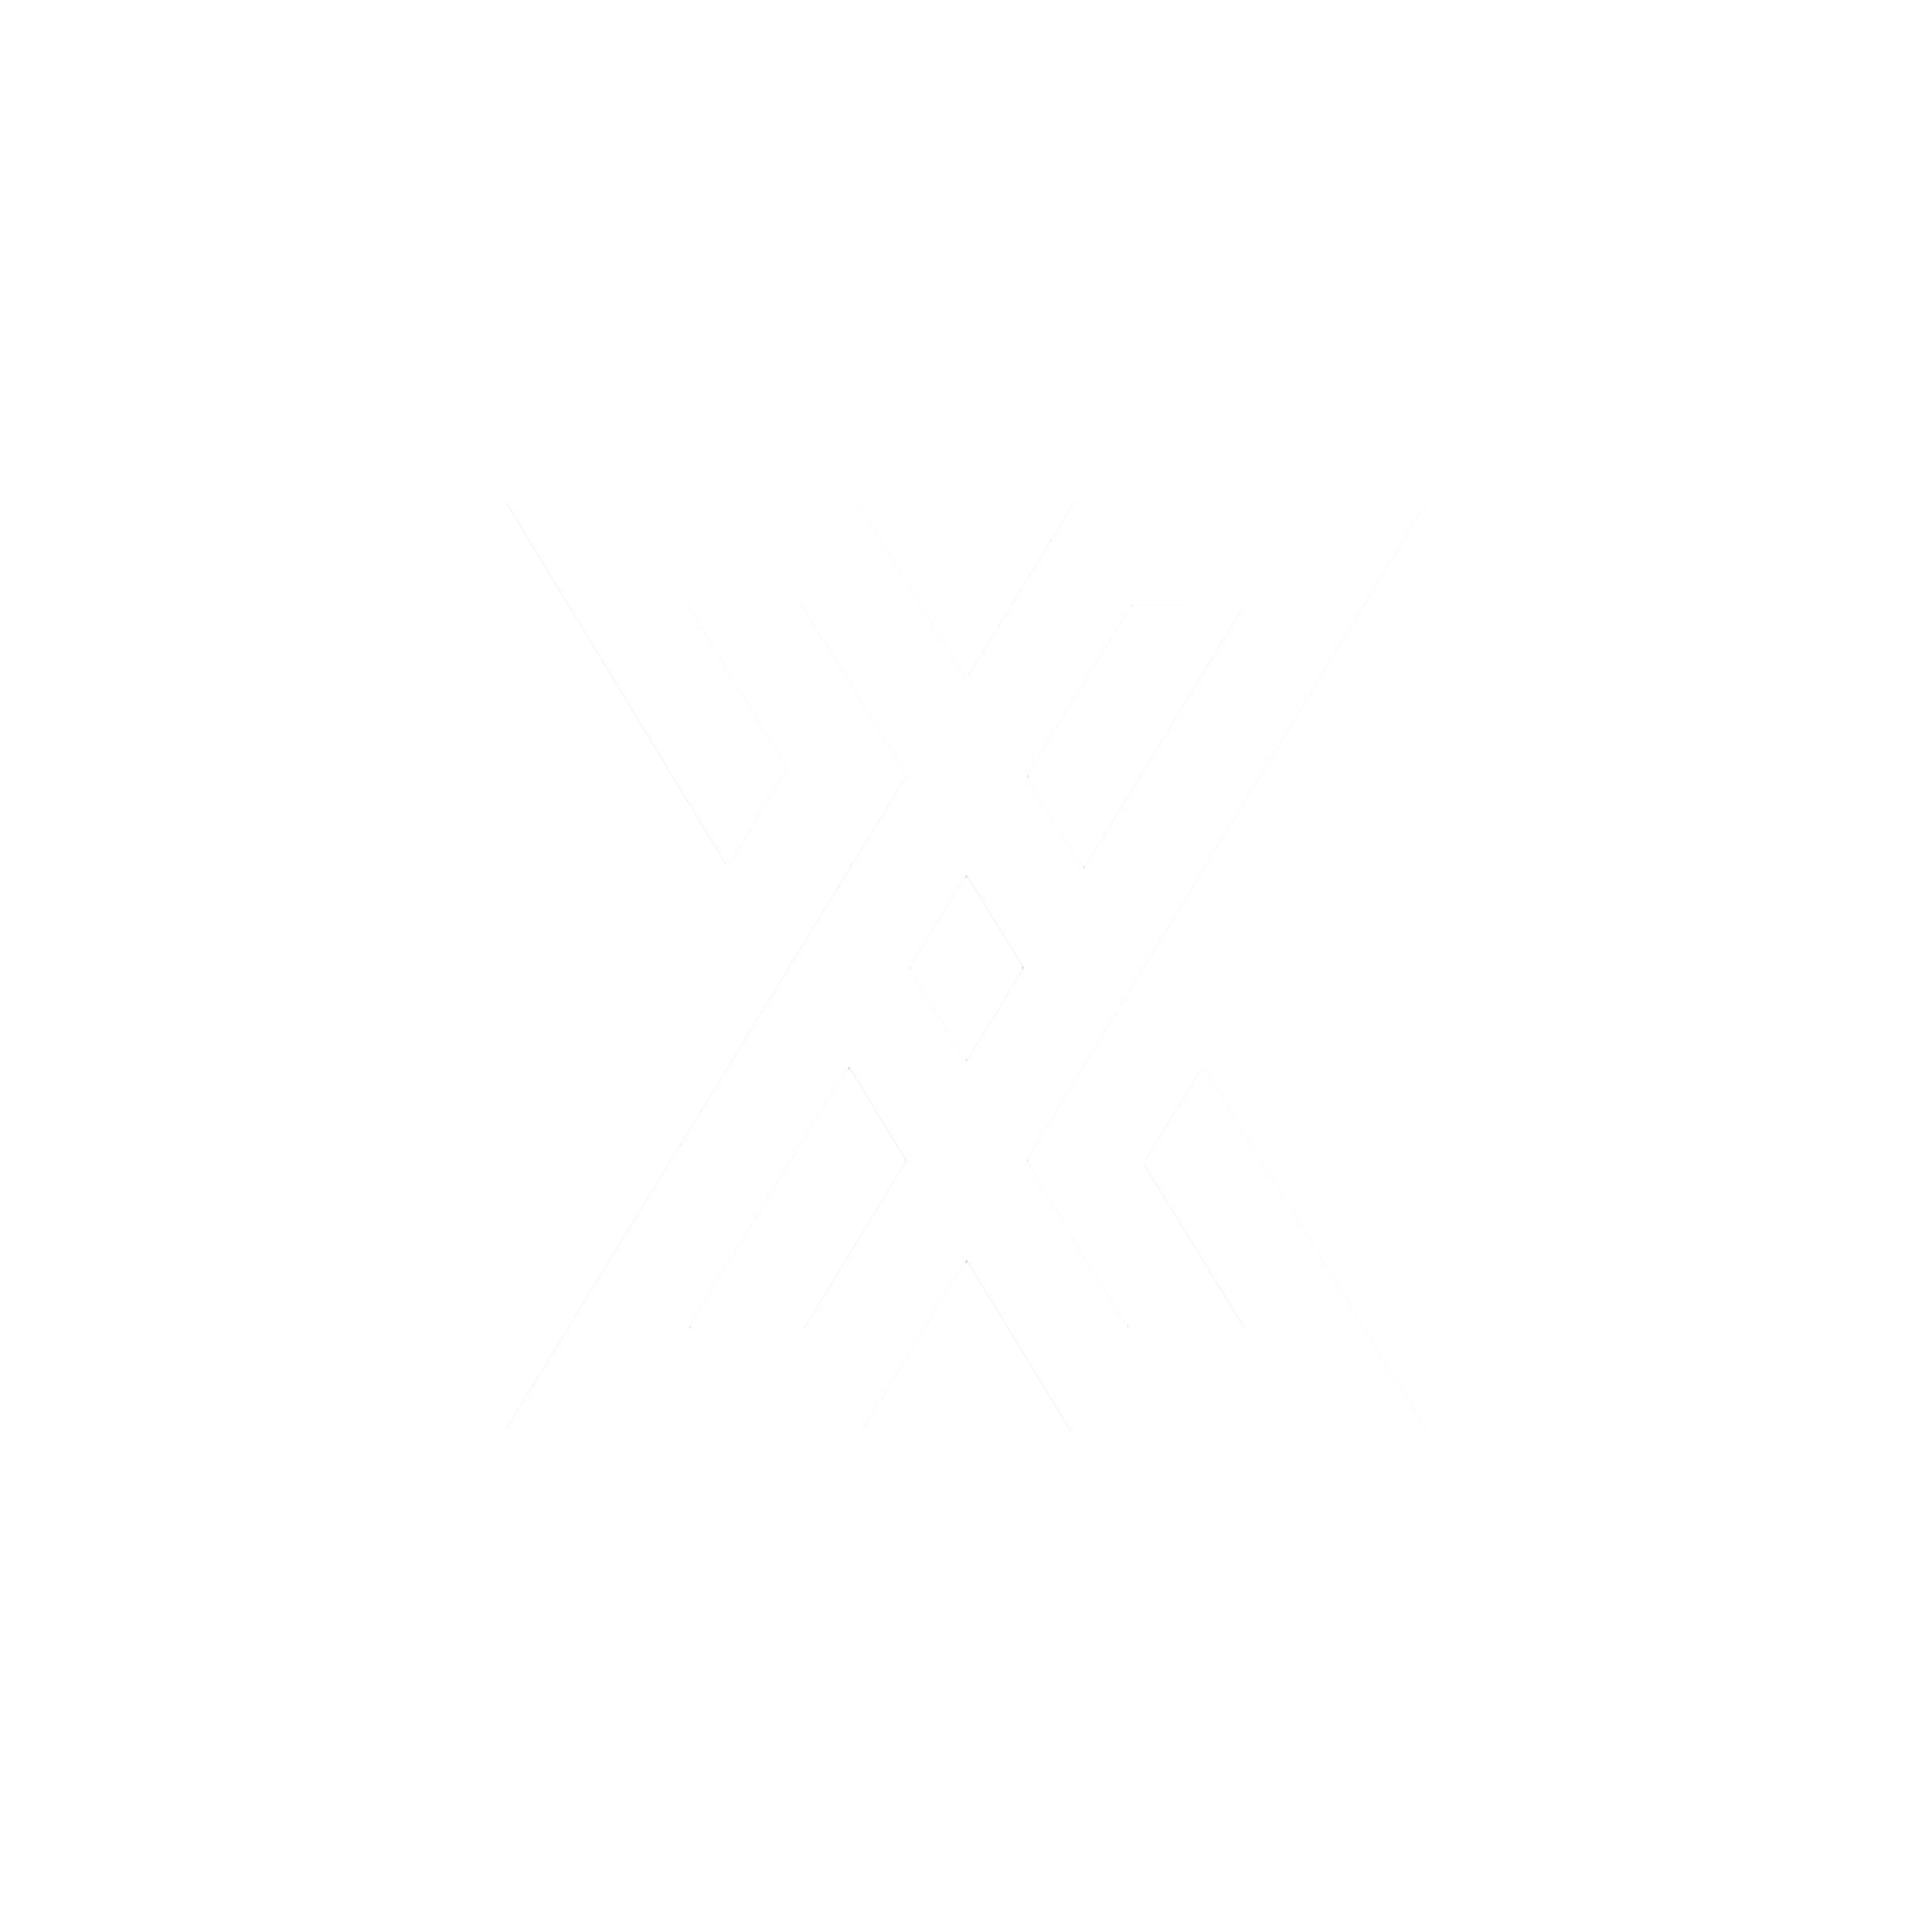 by xavi logo